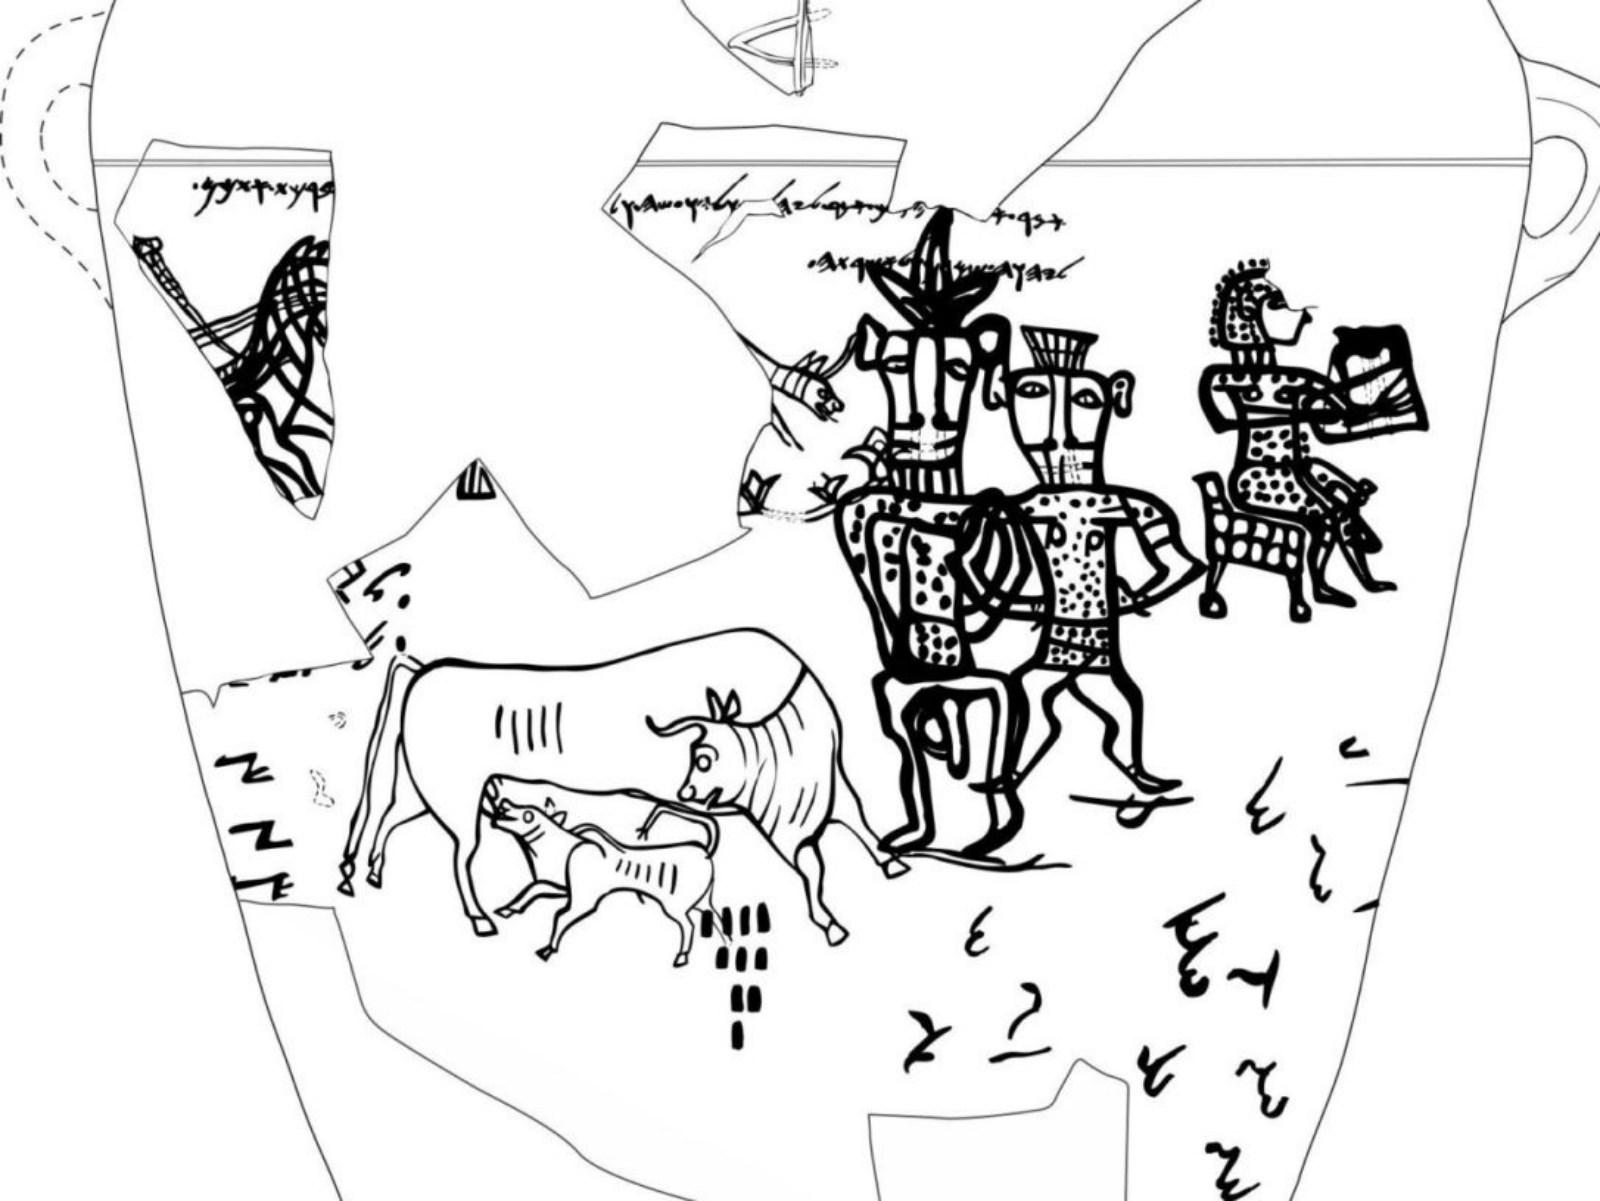 1600x1201 Drawing Found In Sinai Could Change What We Know About Judaism